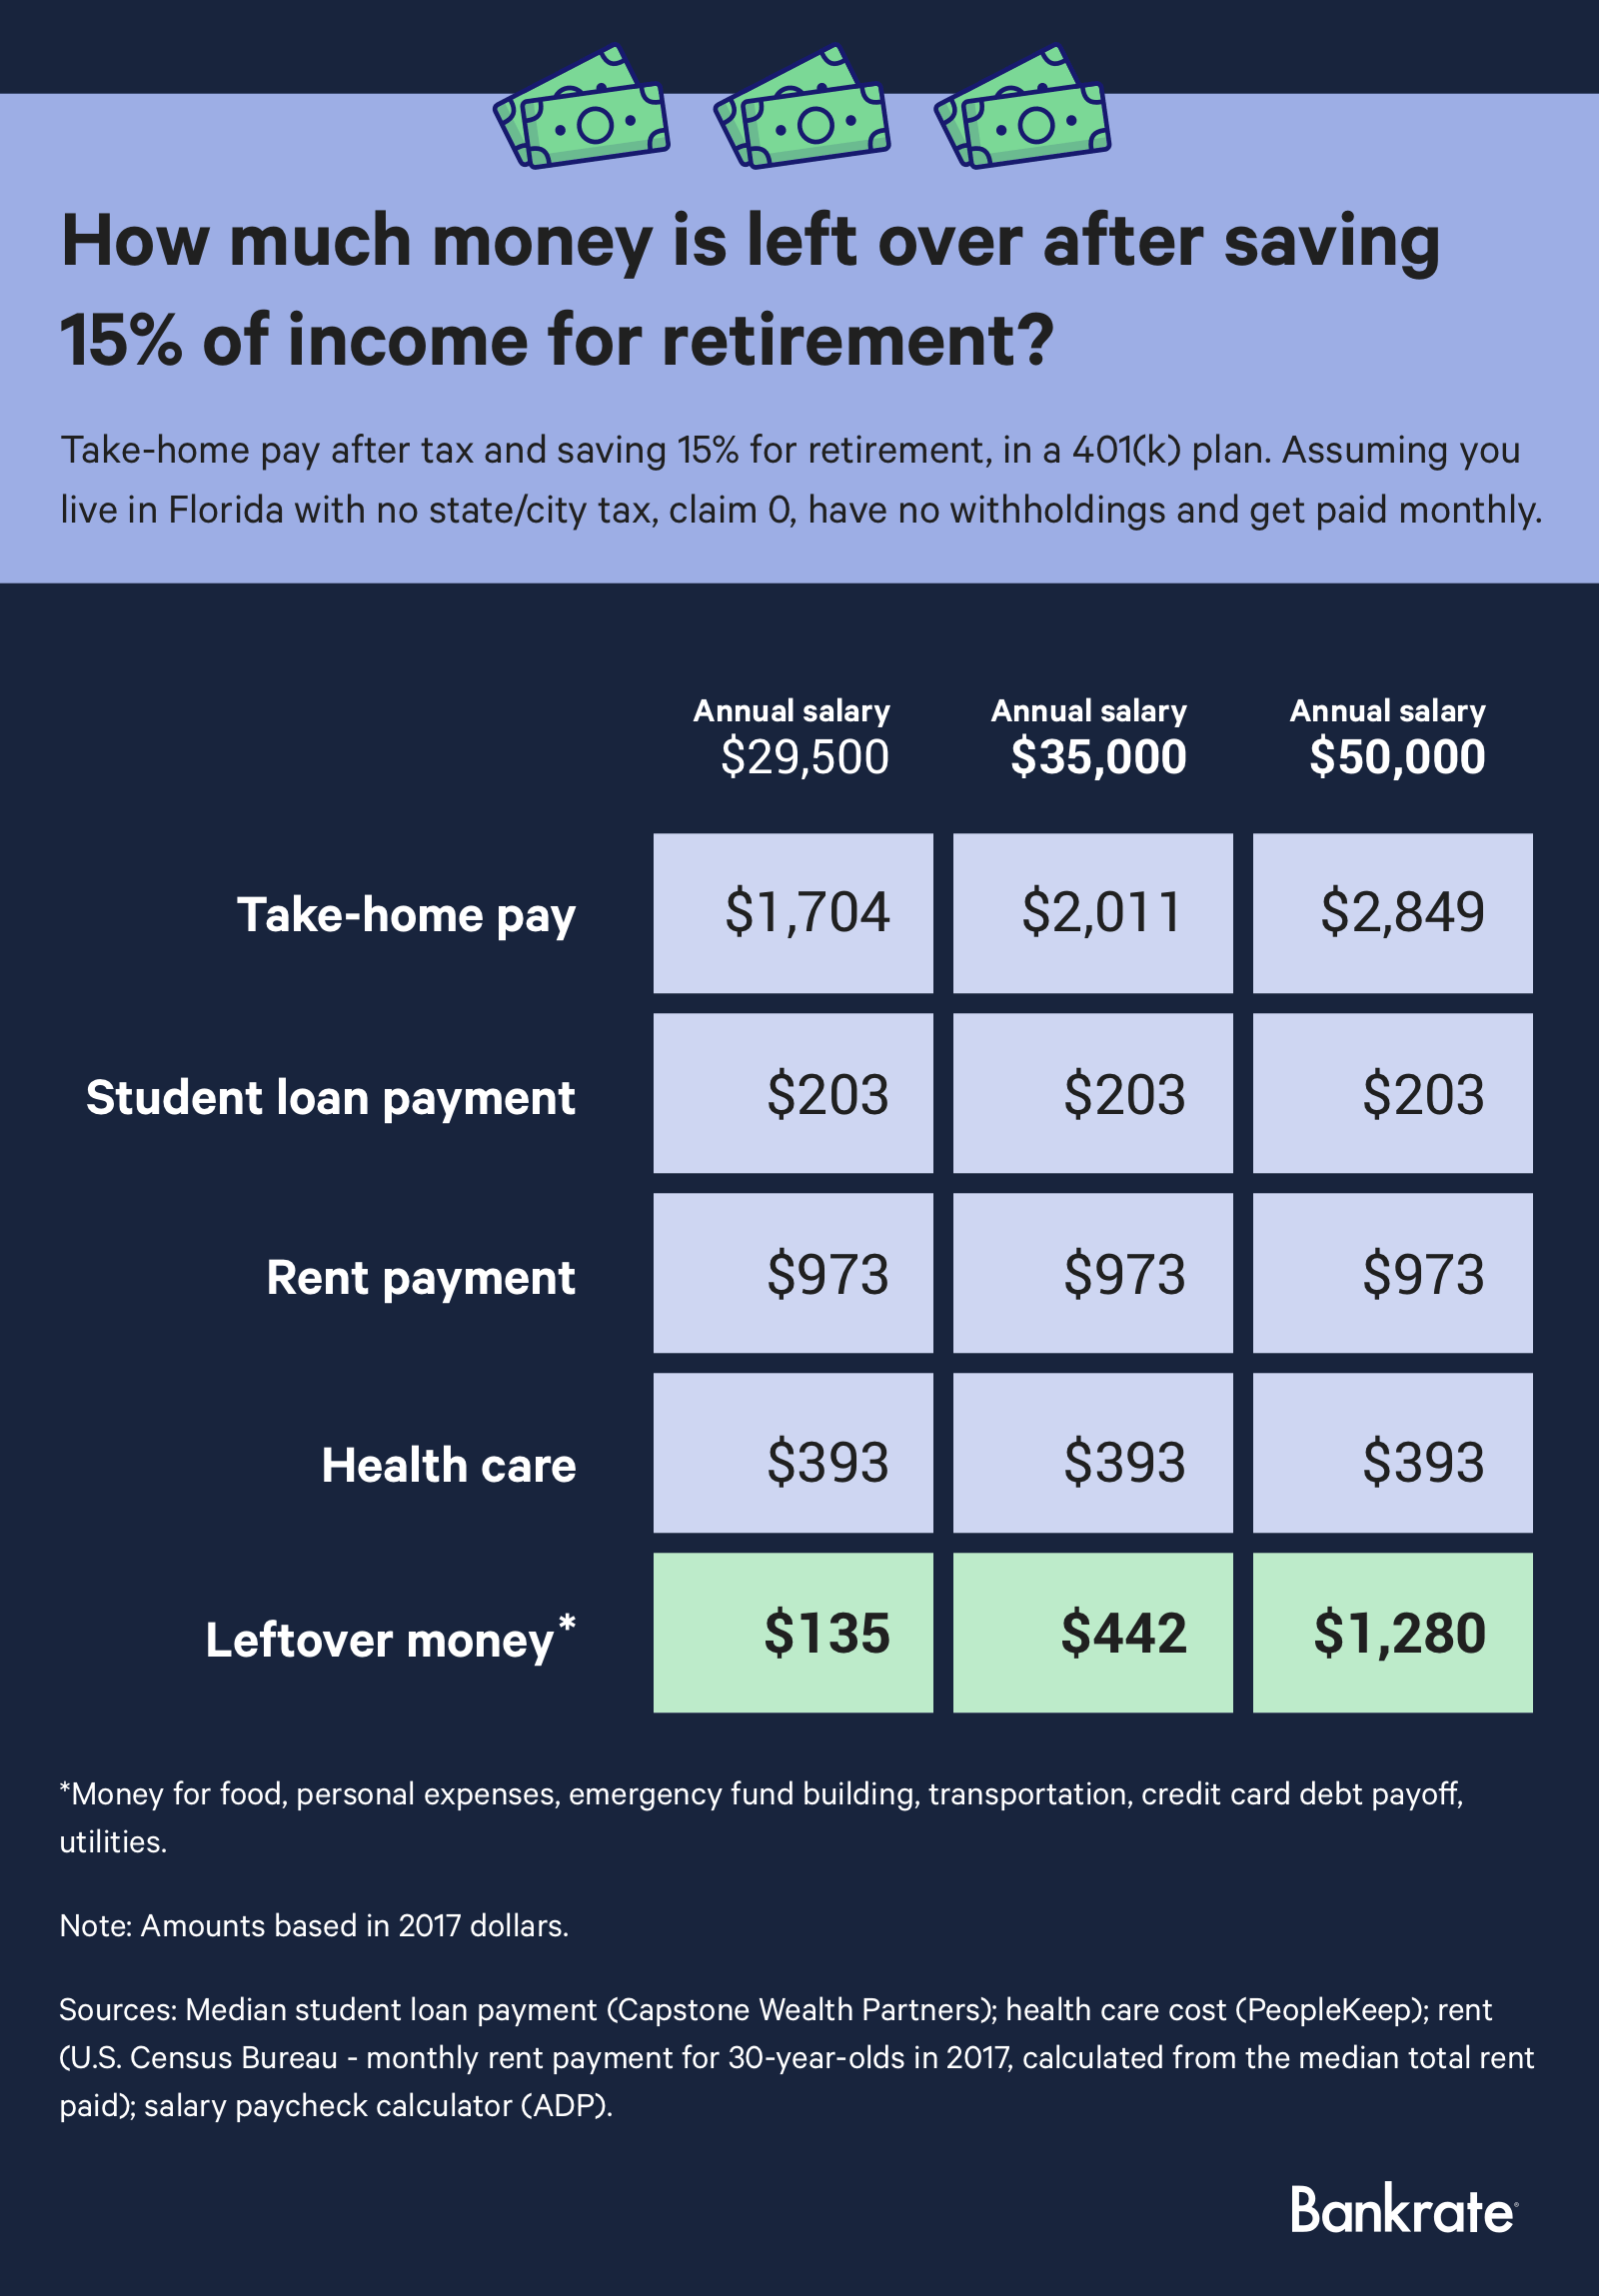 Infographic: How much money is left over after saving 15% of income for retirement?